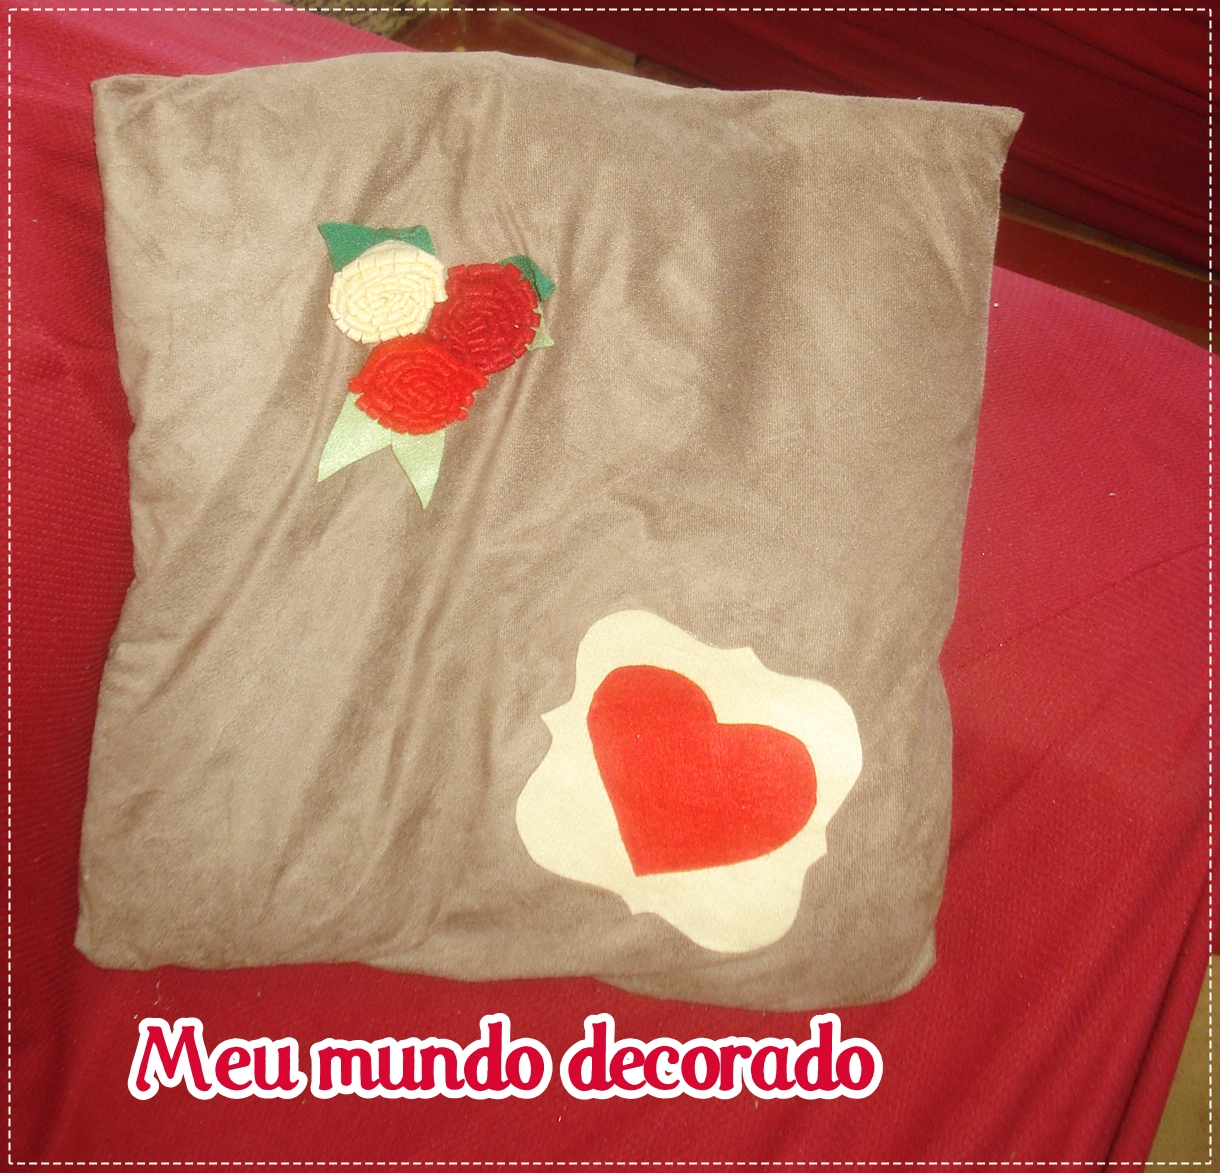 8a1b6be55520c1 Meu mundo decorado: Almofadas customizadas com feltro....